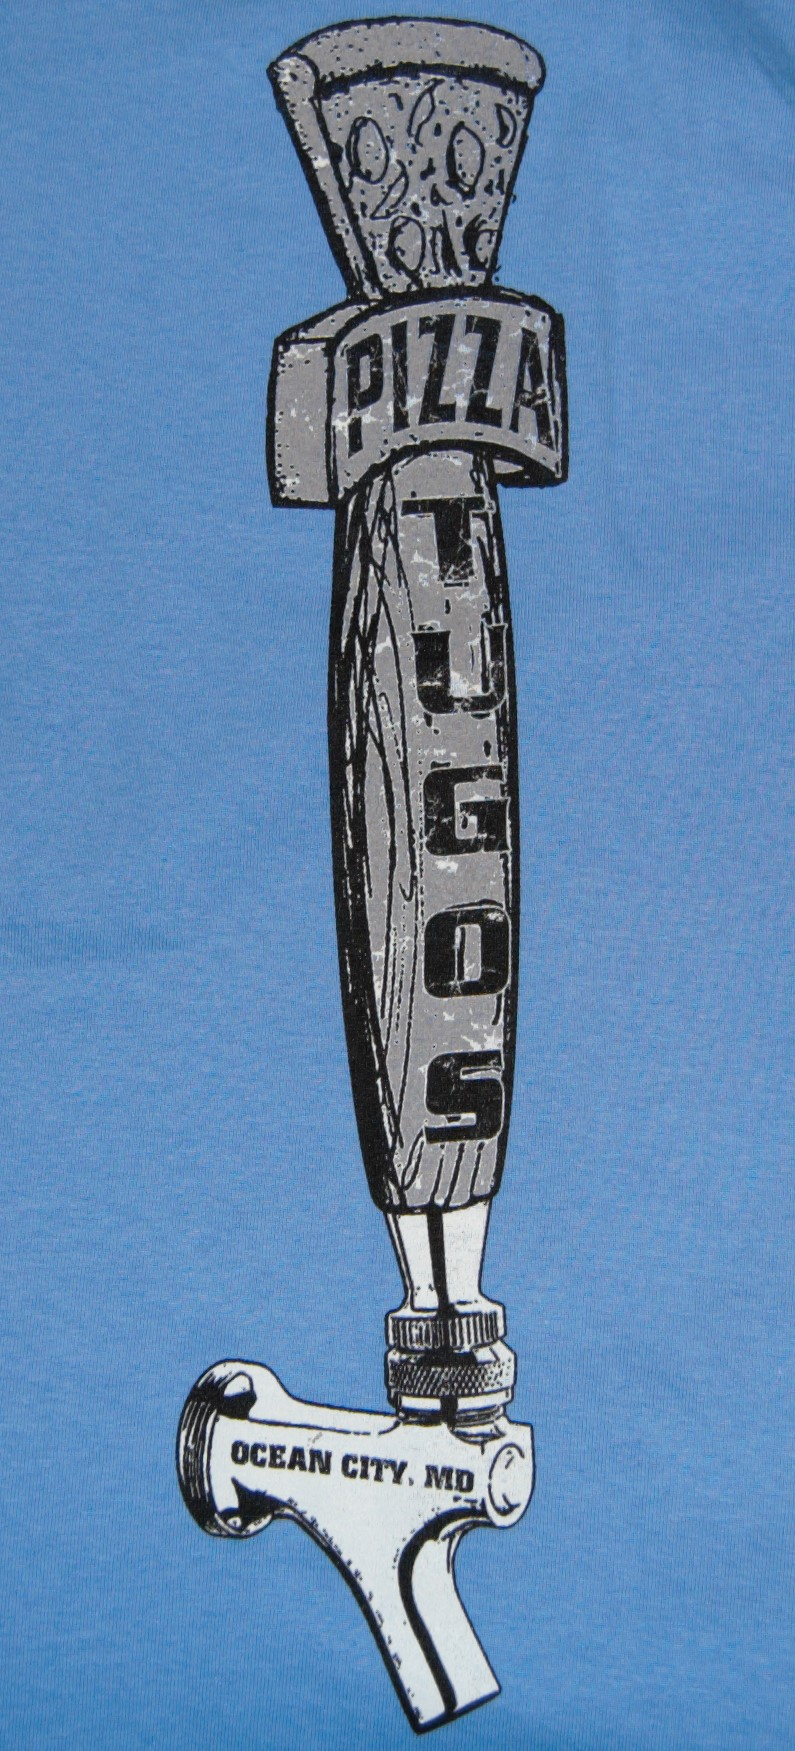 Tugos Taproom Beer Tap Periwnkle Back of Shirt Close Up